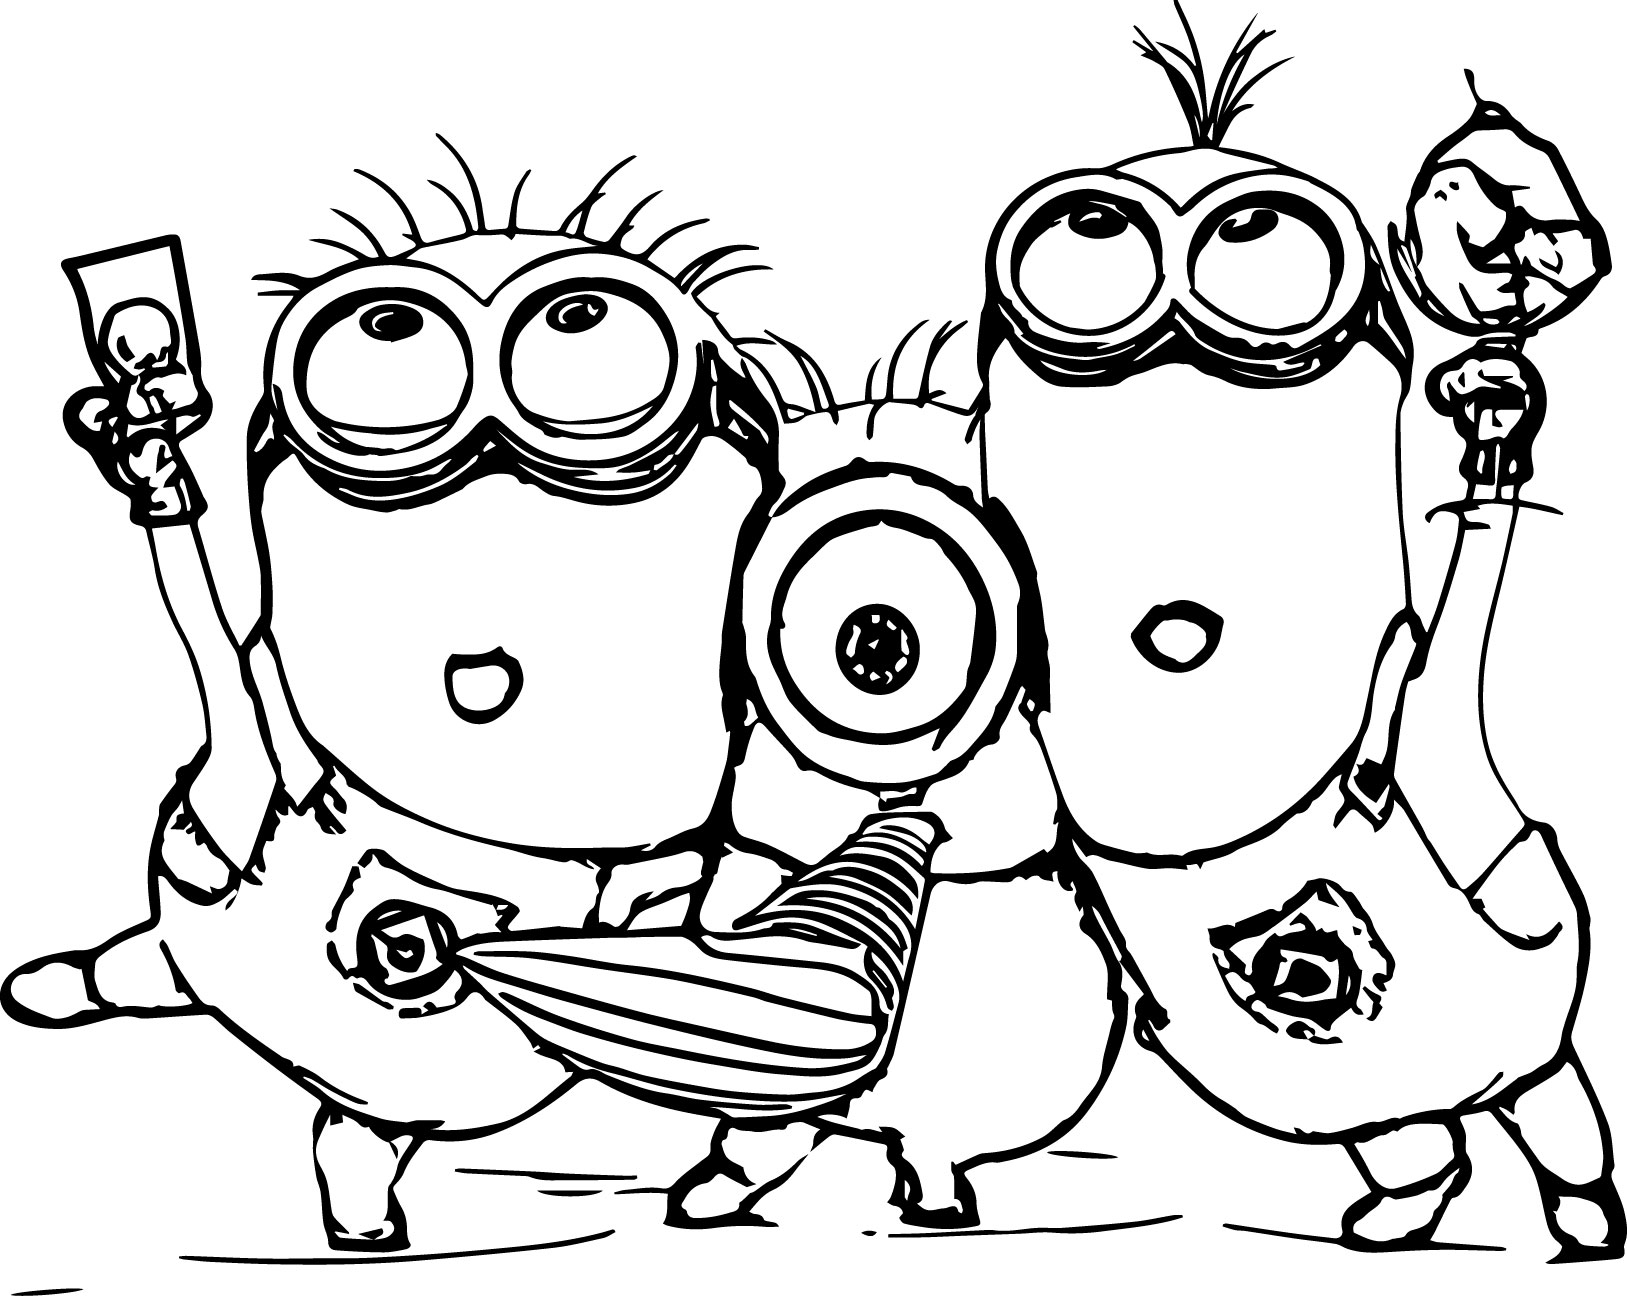 minion coloring pictures print download minion coloring pages for kids to have minion coloring pictures